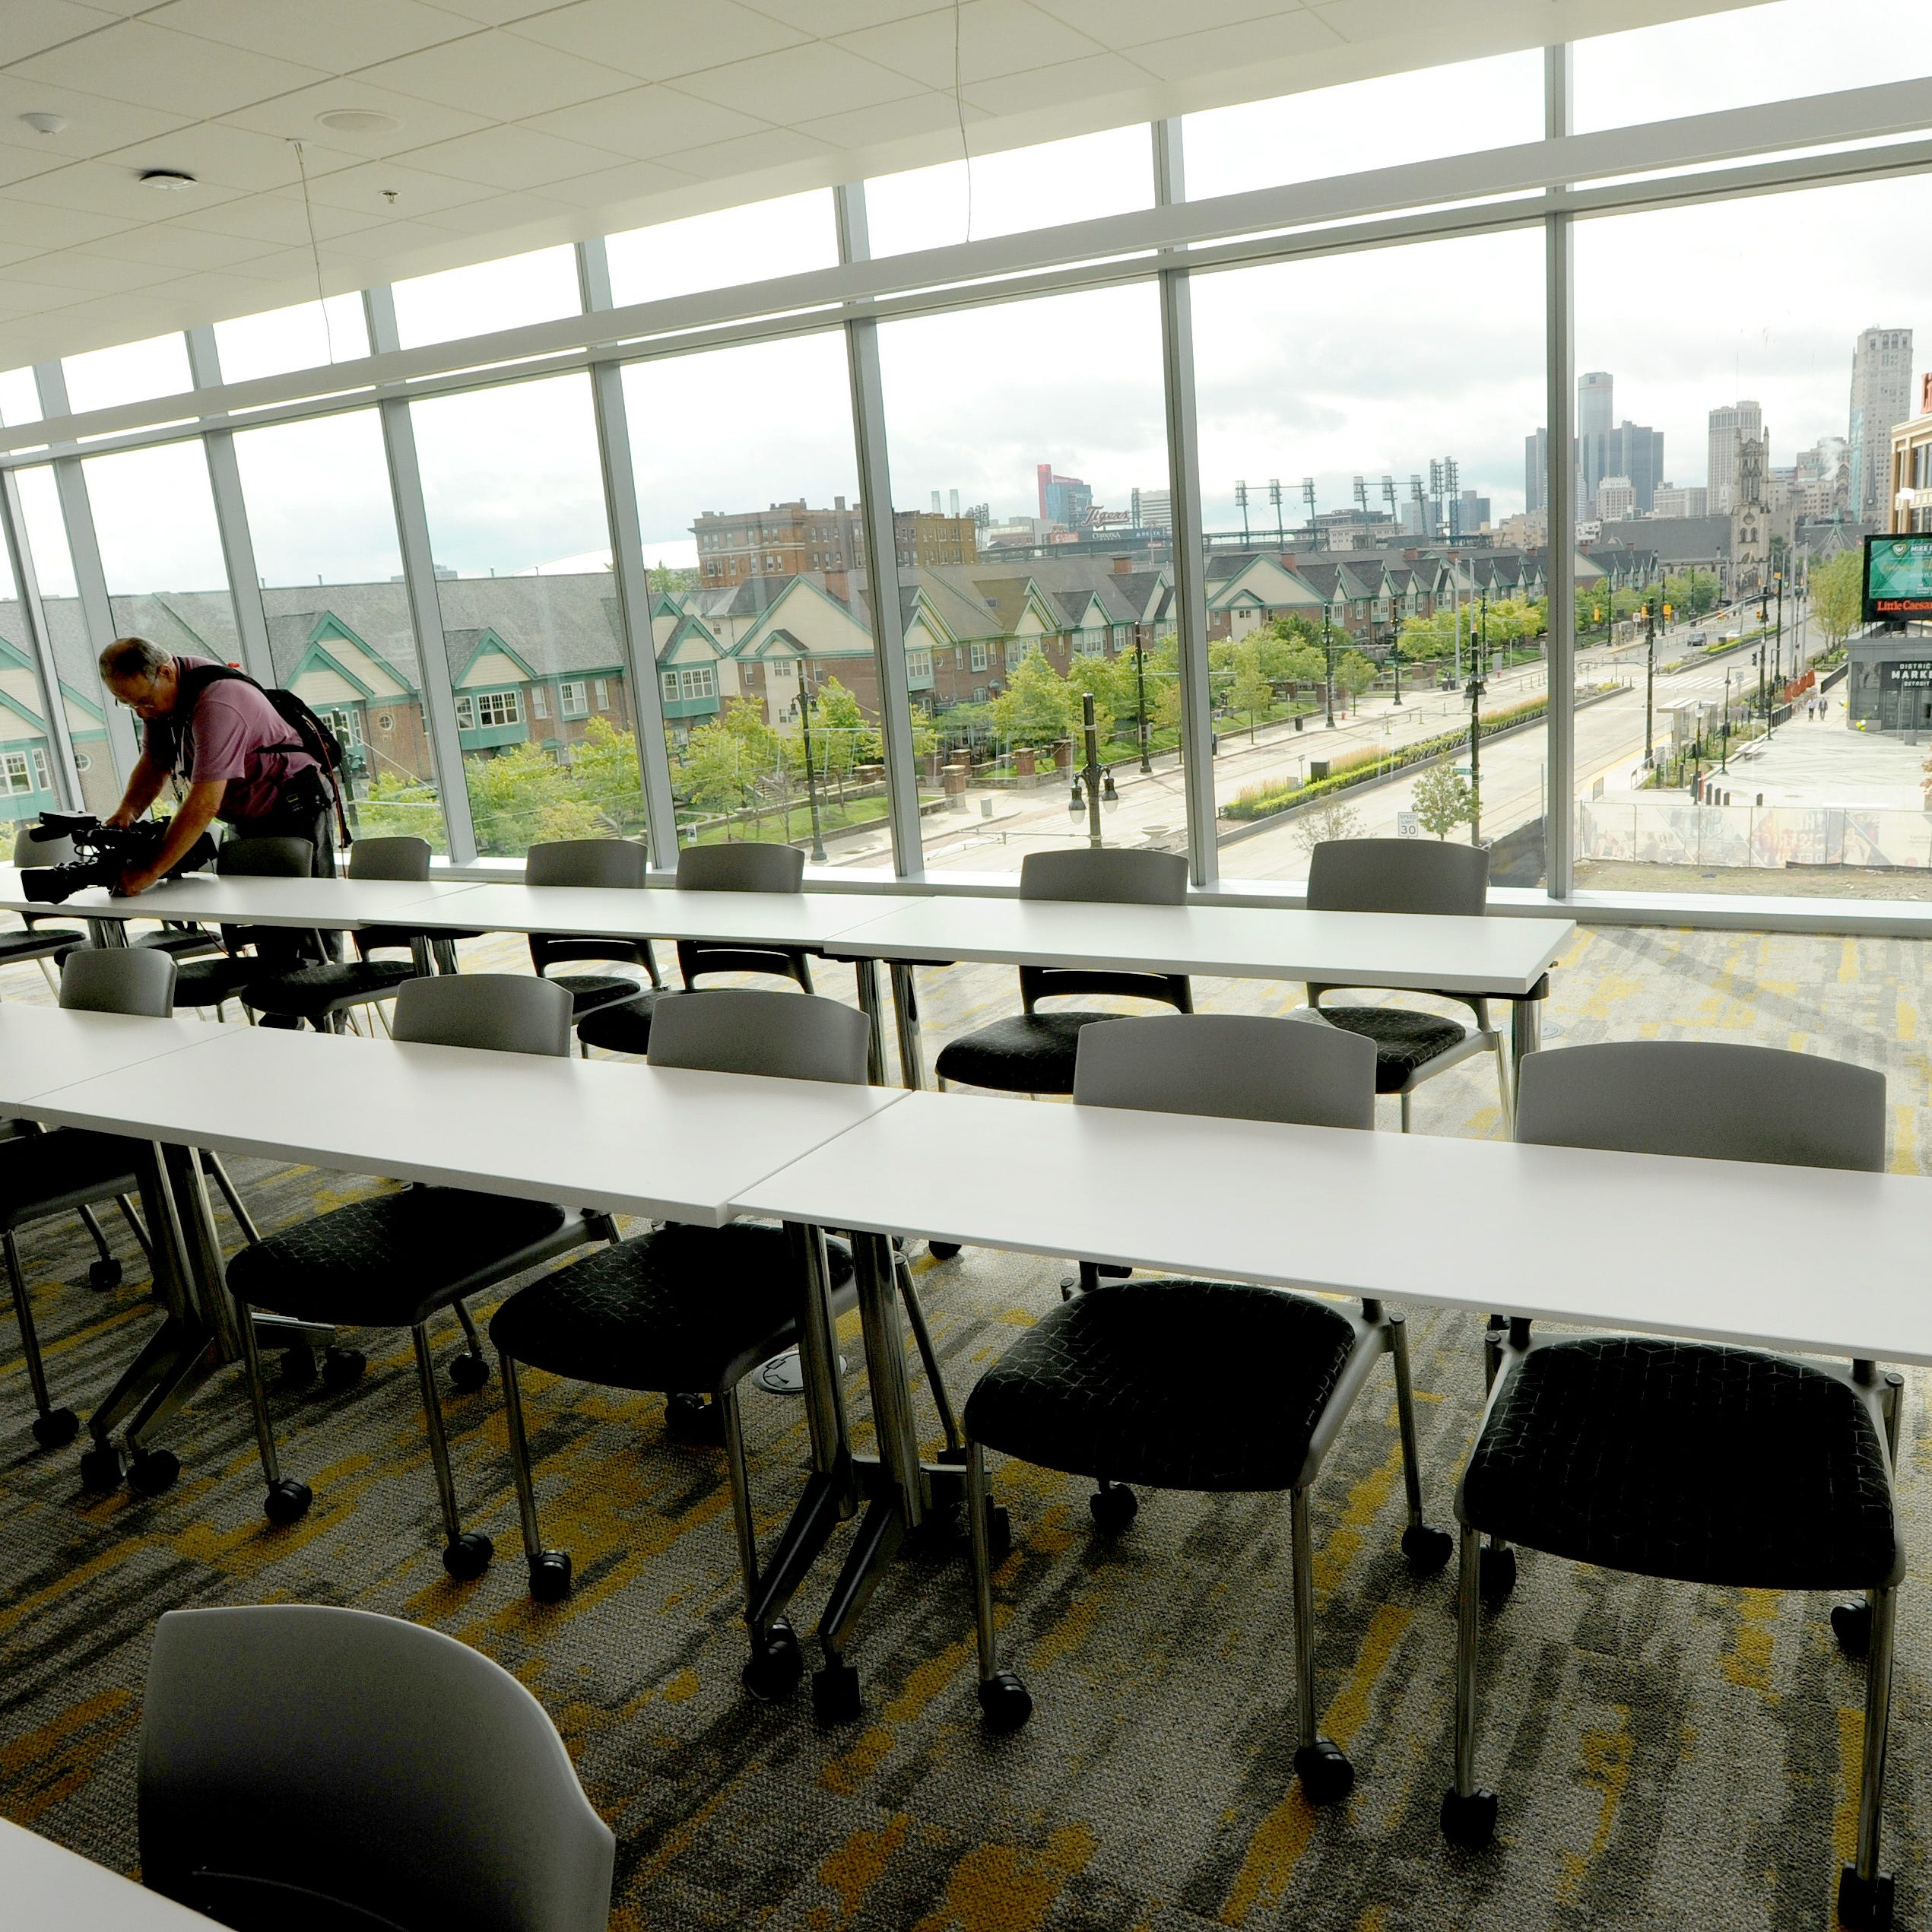 A look at Wayne State's Mike Ilitch School of Business